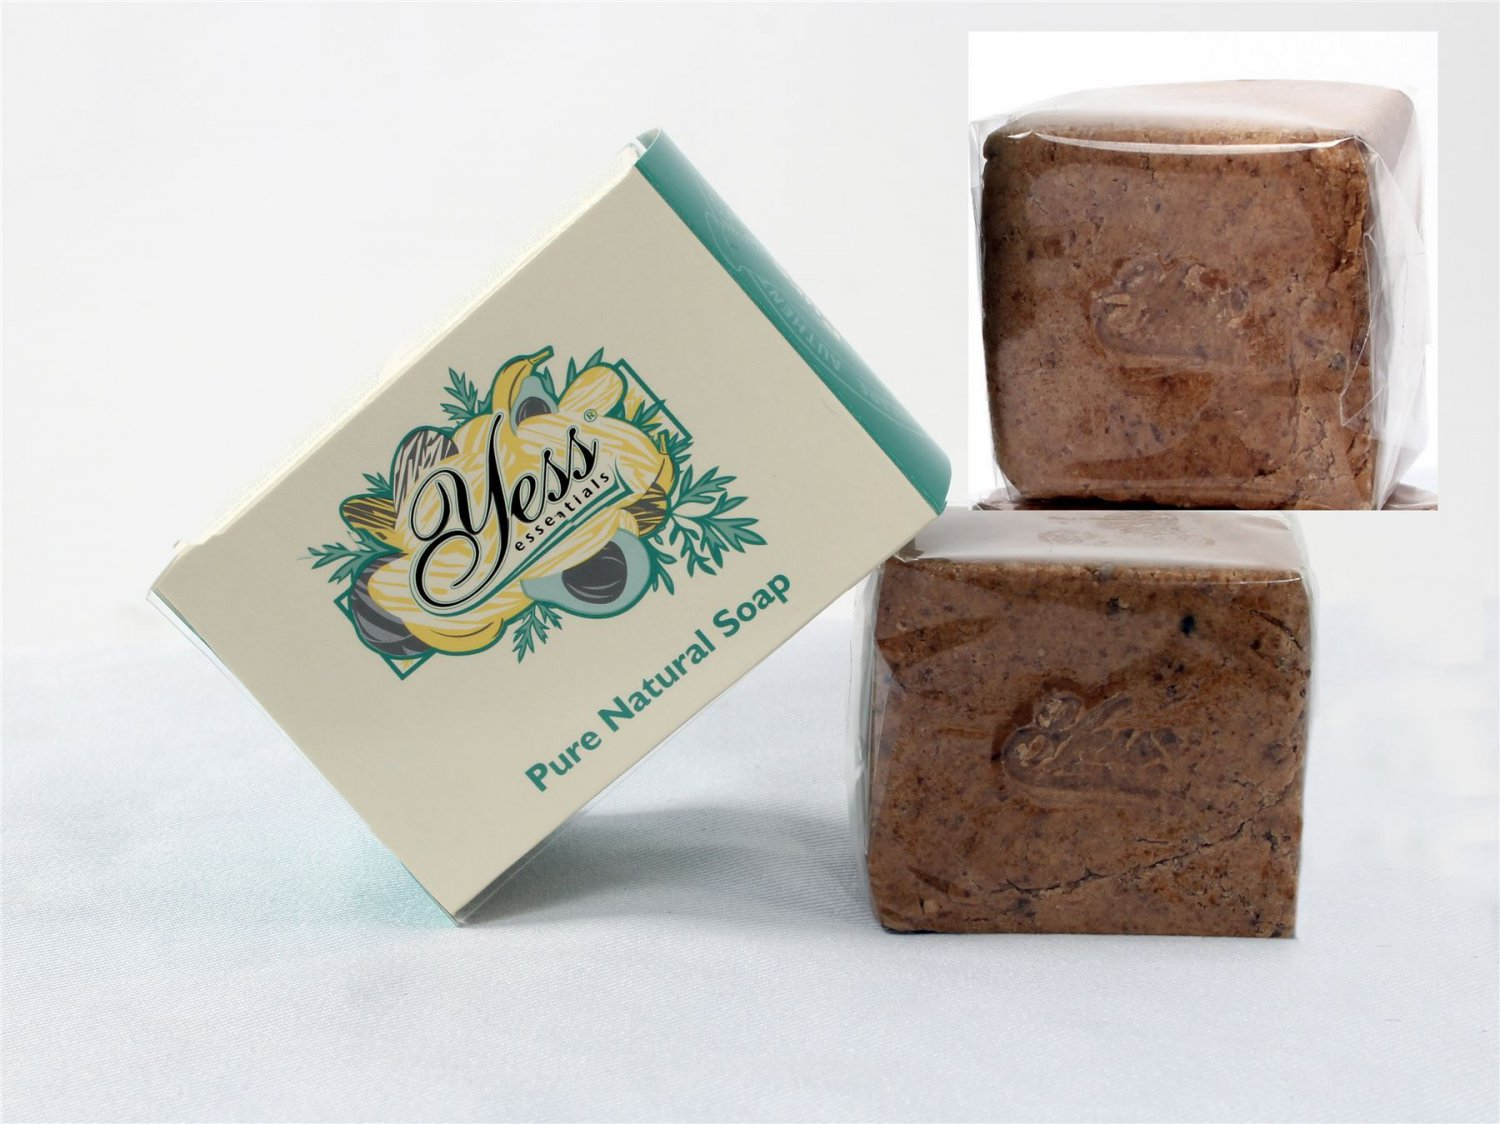 Yess Essentials African Black Soap with Shea Butter 200g